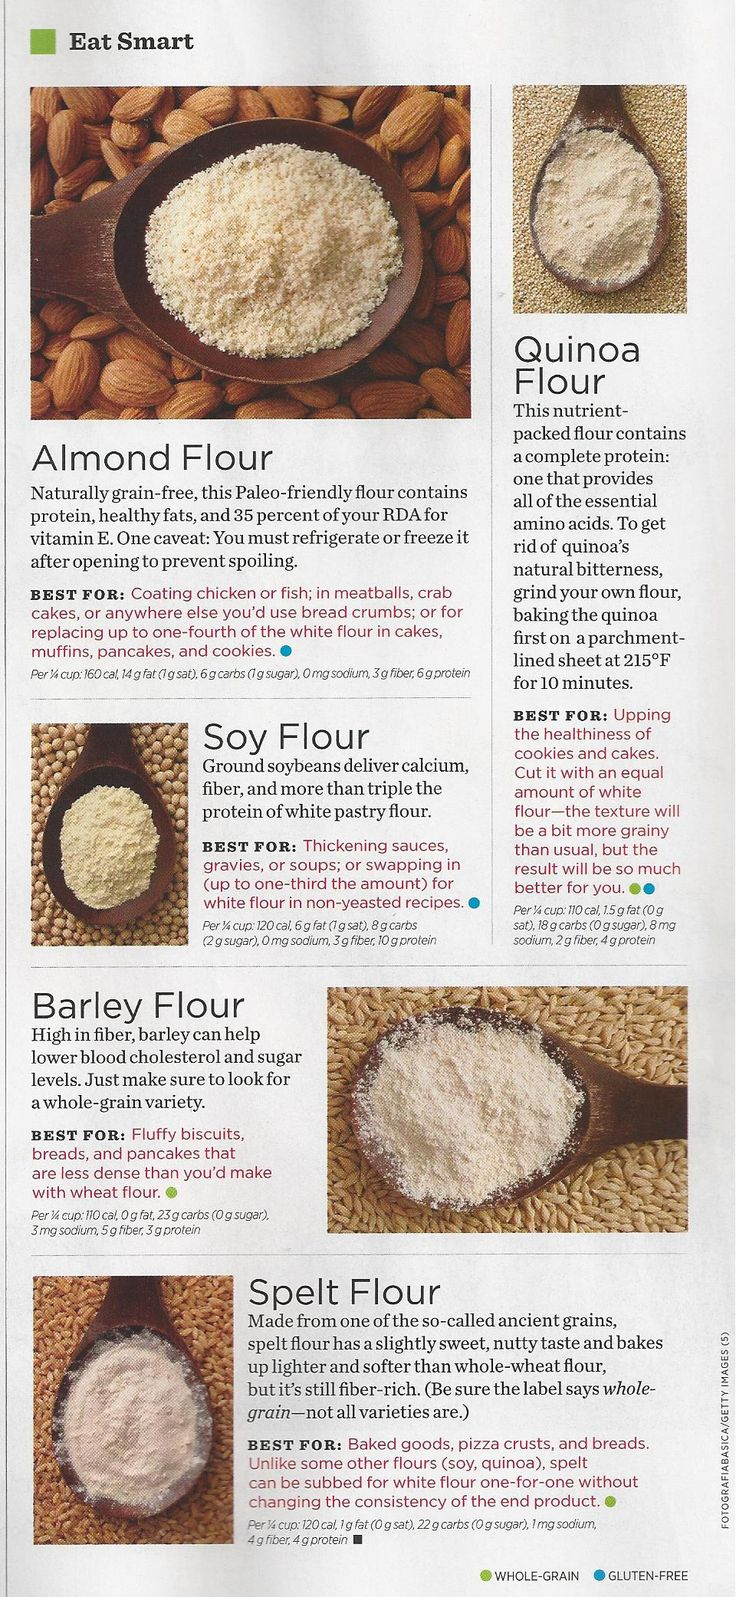 Difference between Almond Flour, Quinoa Flour, Soy Flour, Barley Flour and Spelt Flour.